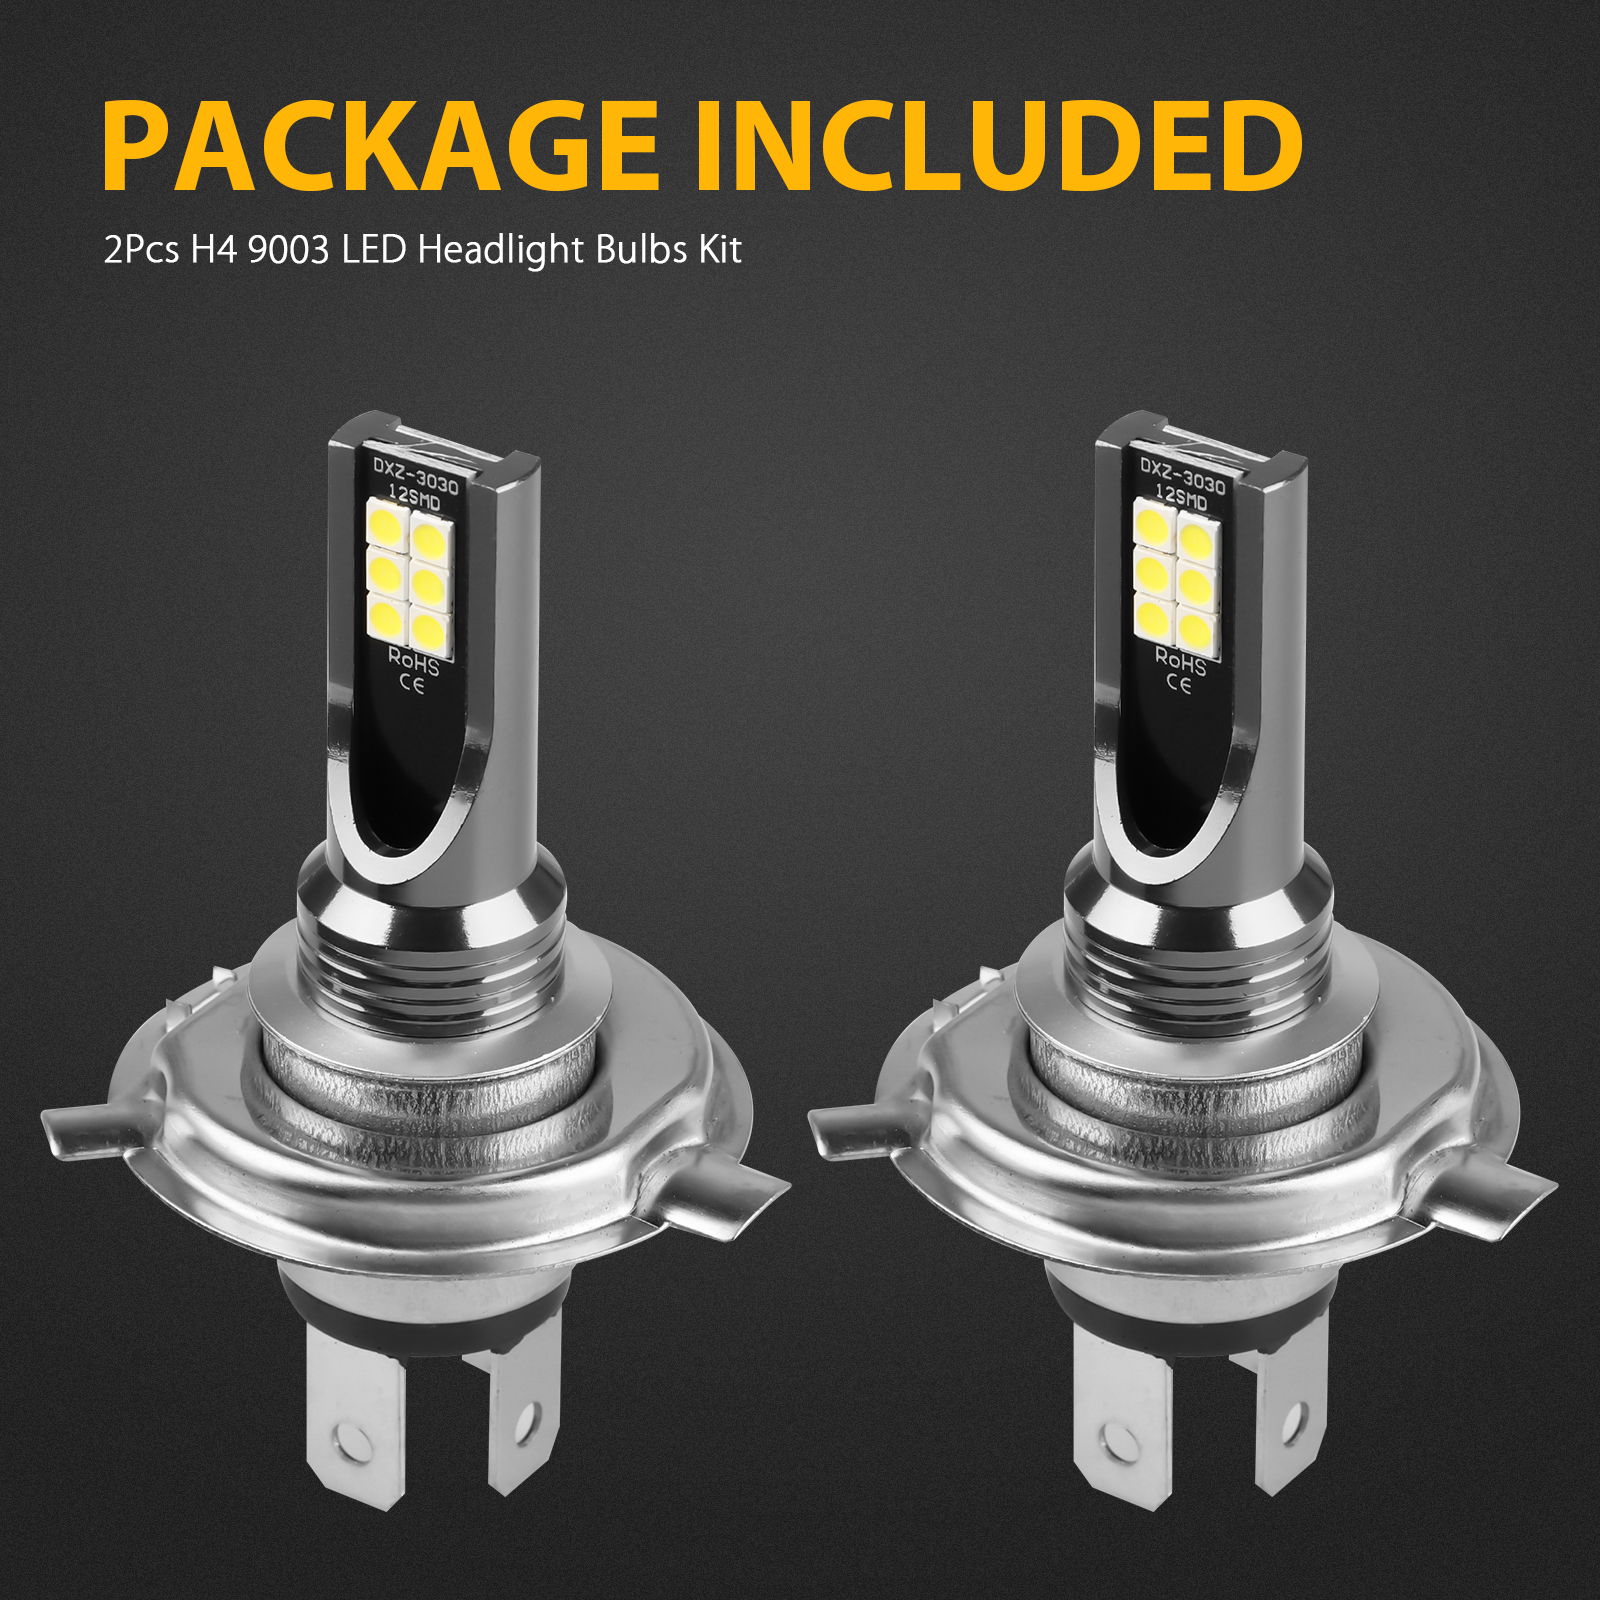 2X-H4-9003-LED-Headlight-Bulbs-Kit-High-Low-Beam-Super-Bright-100W-14000LM-6000K thumbnail 9